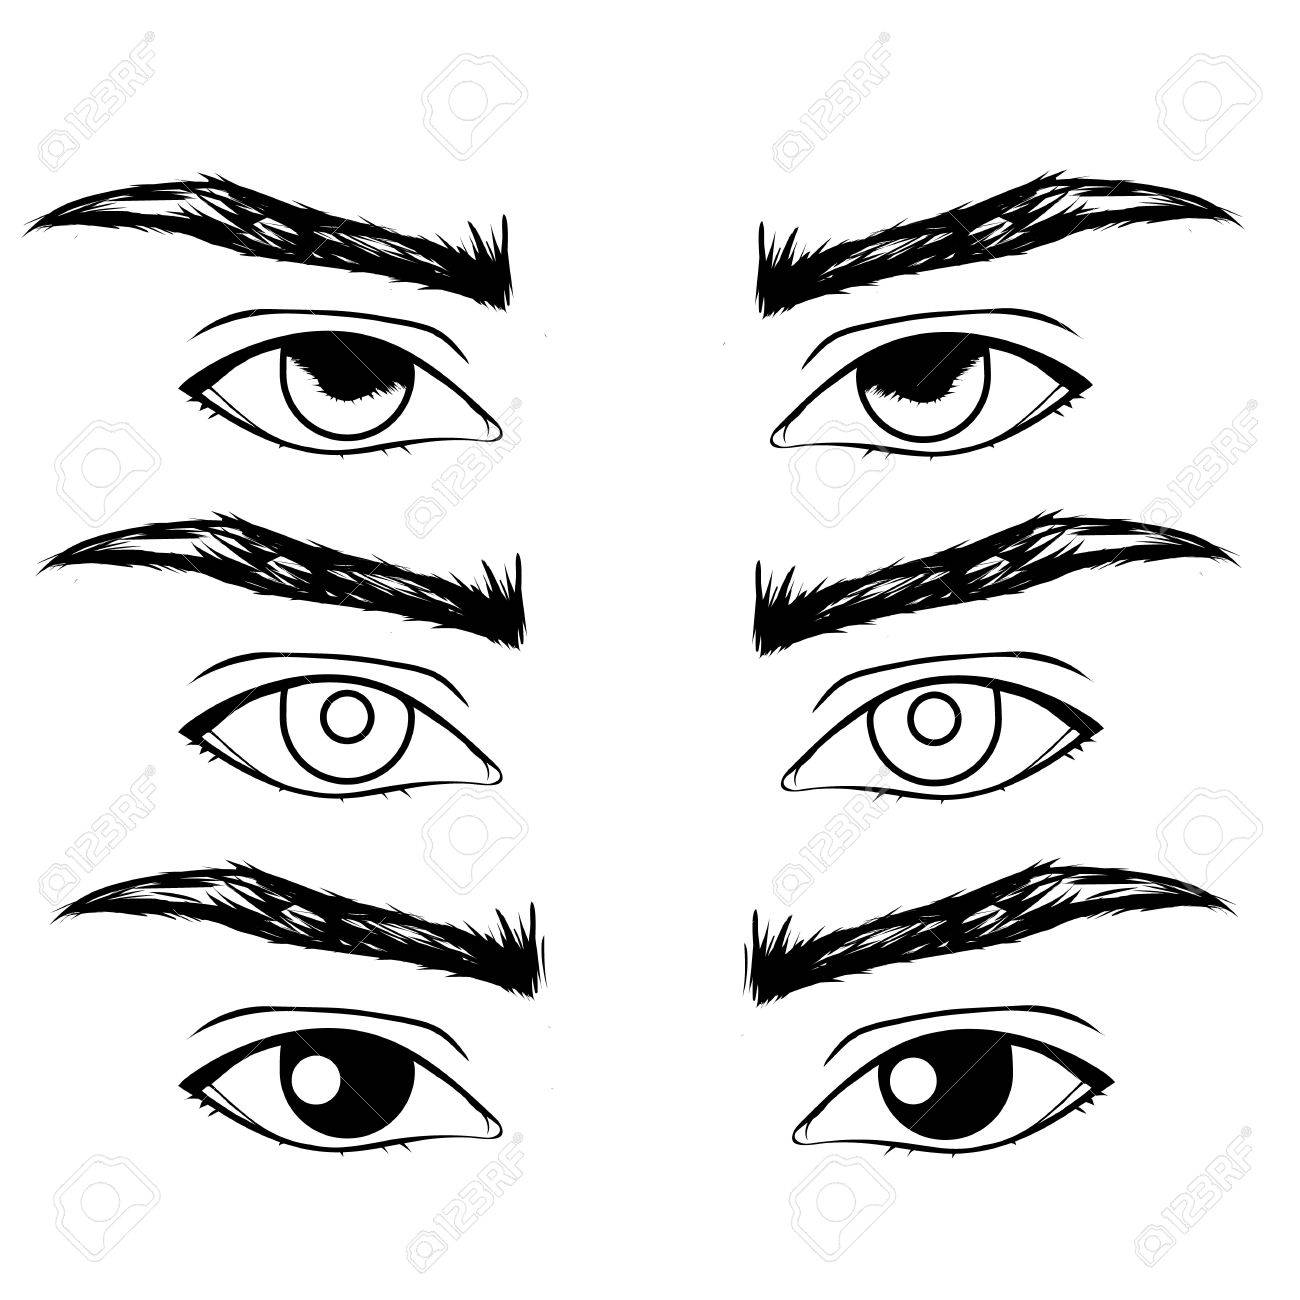 1300x1300 Hand Drawn Men#39s Eyes Royalty Free Cliparts, Vectors, And Stock